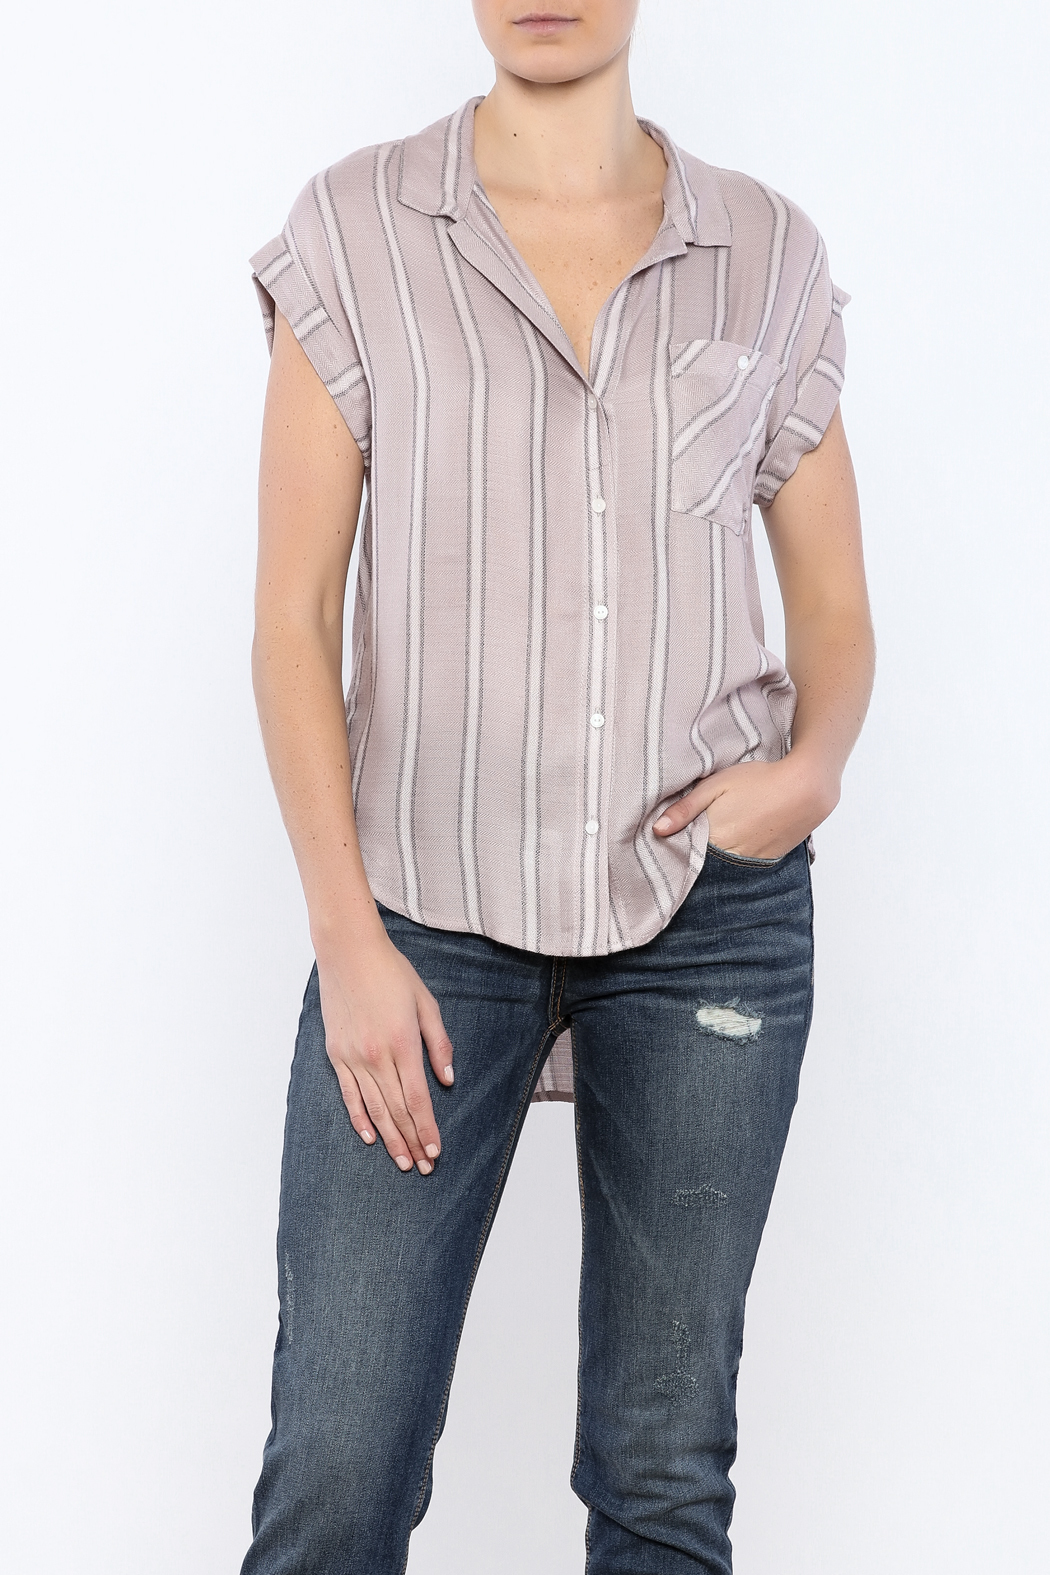 Sneak Peek Striped Button Down Hi-Lo Top - Main Image